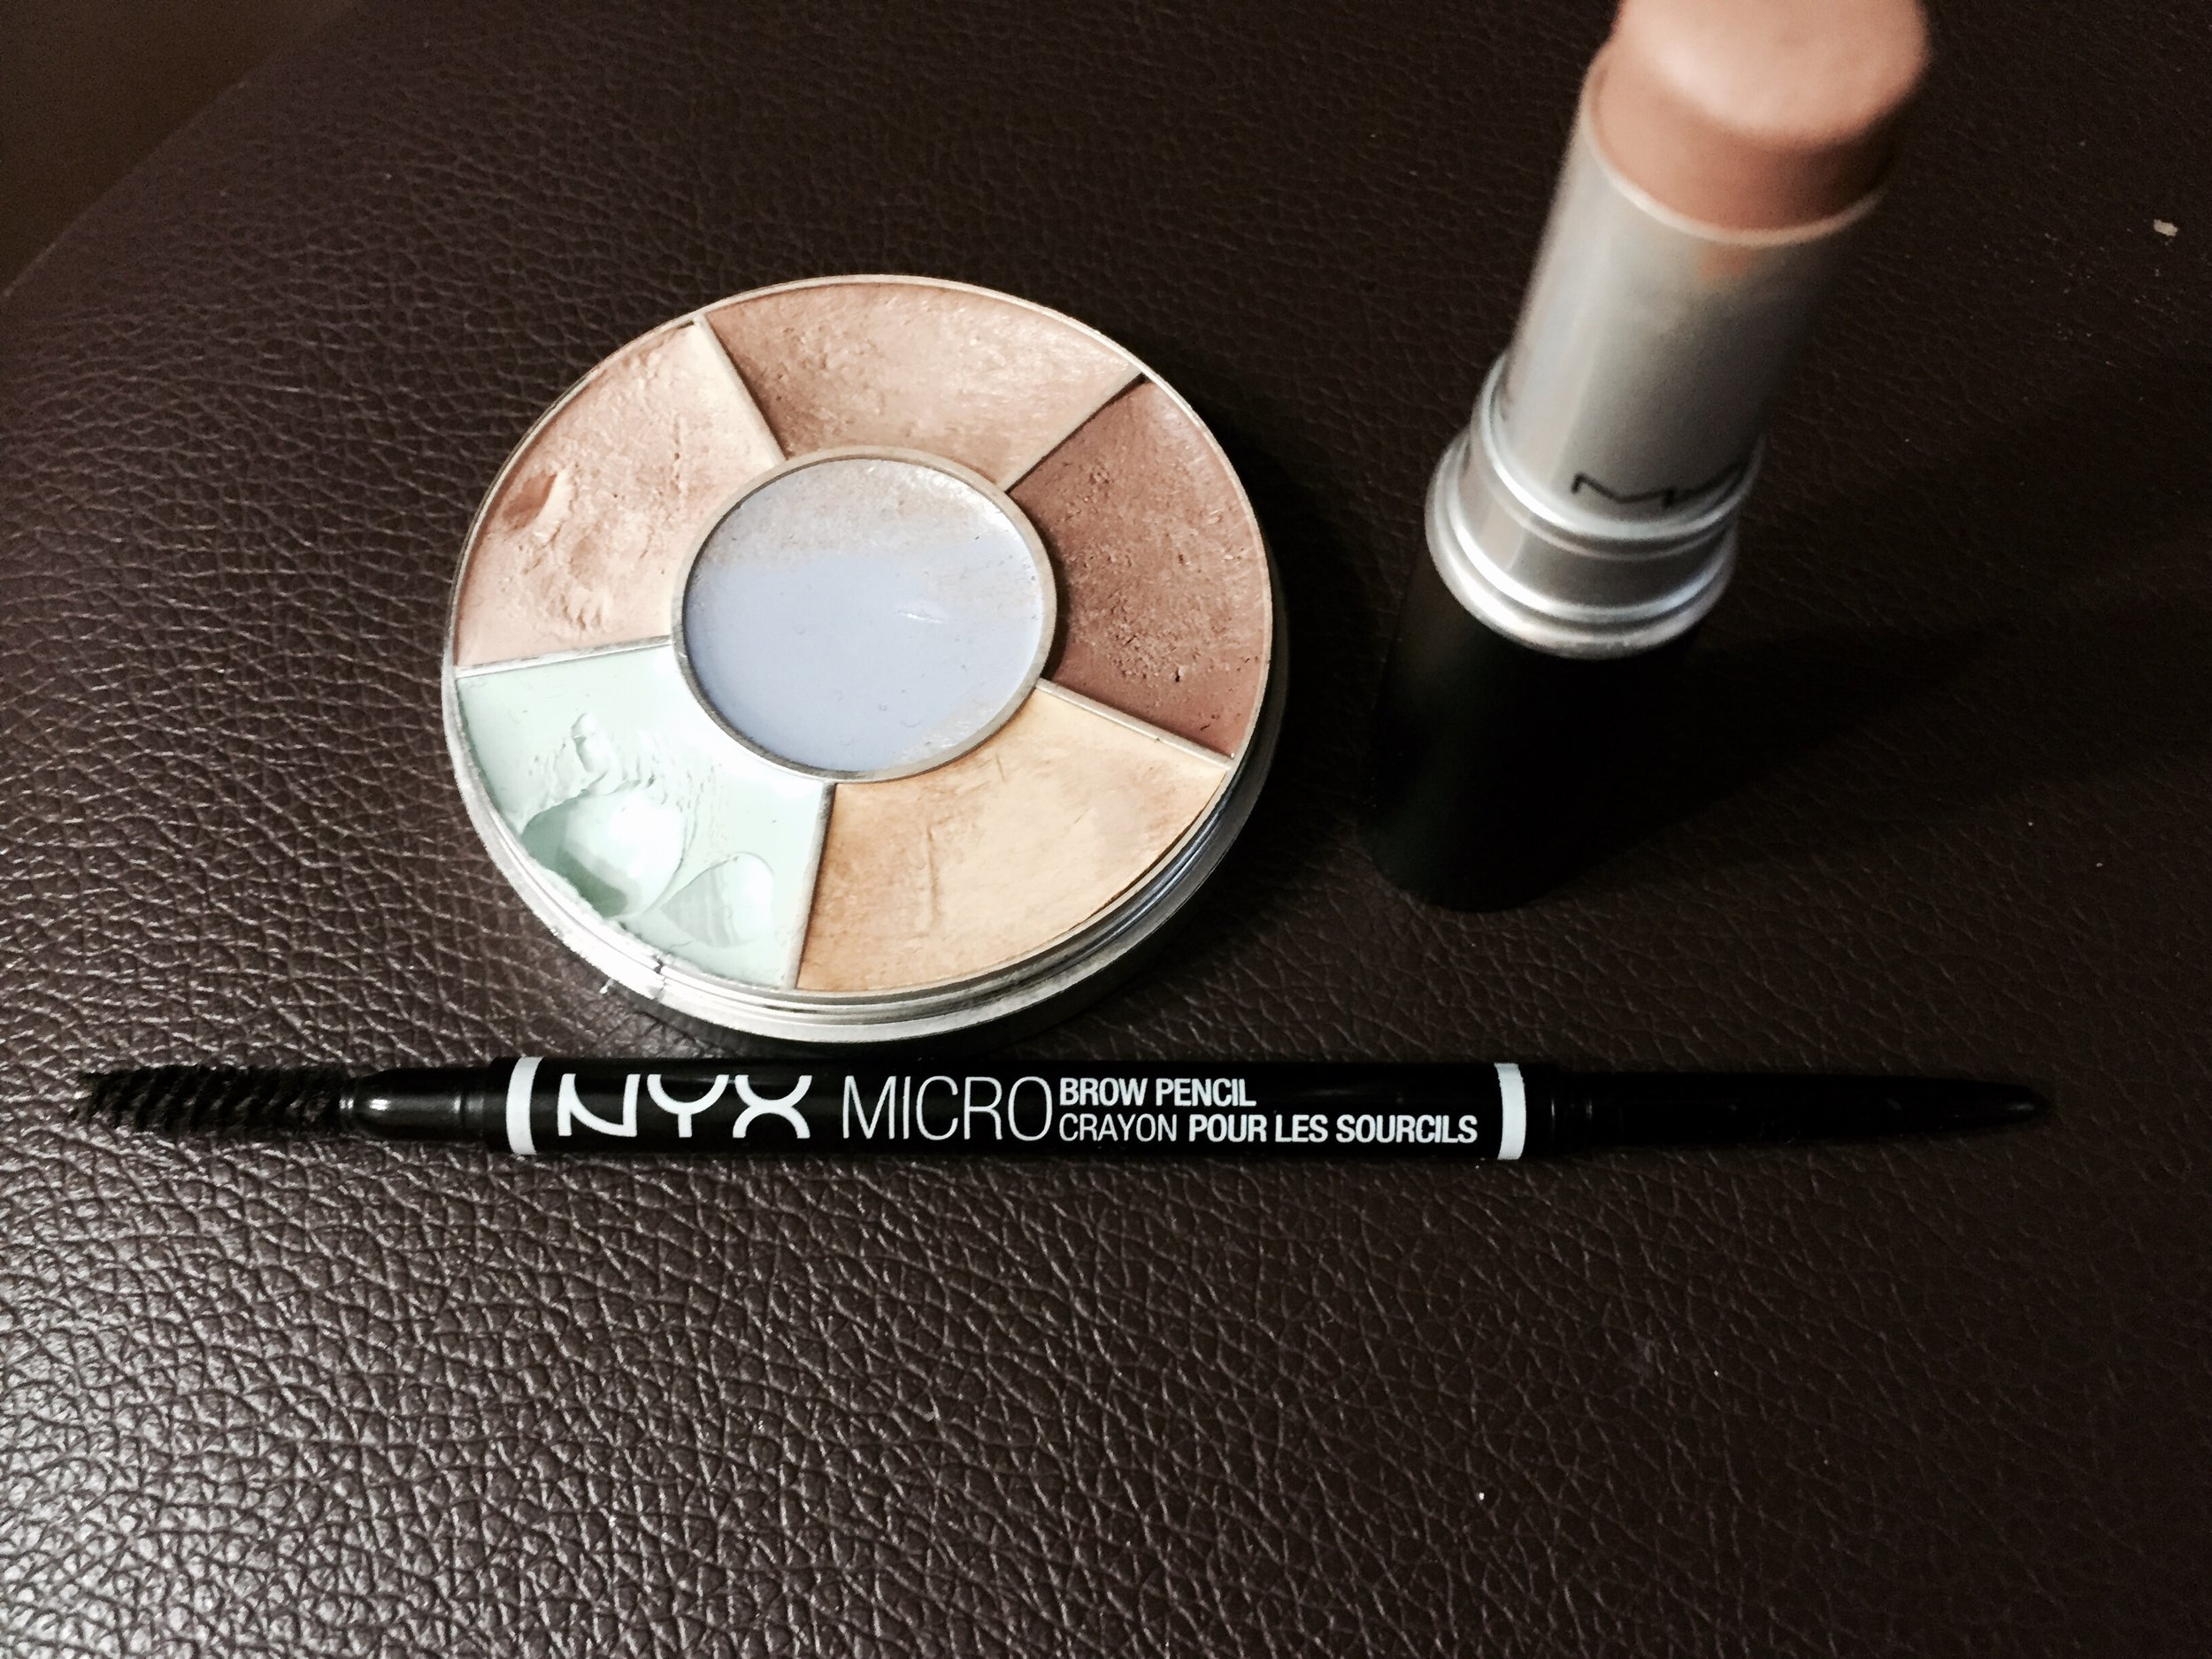 Colour corrector wheel to conceil imperfections and brow pencil/brush